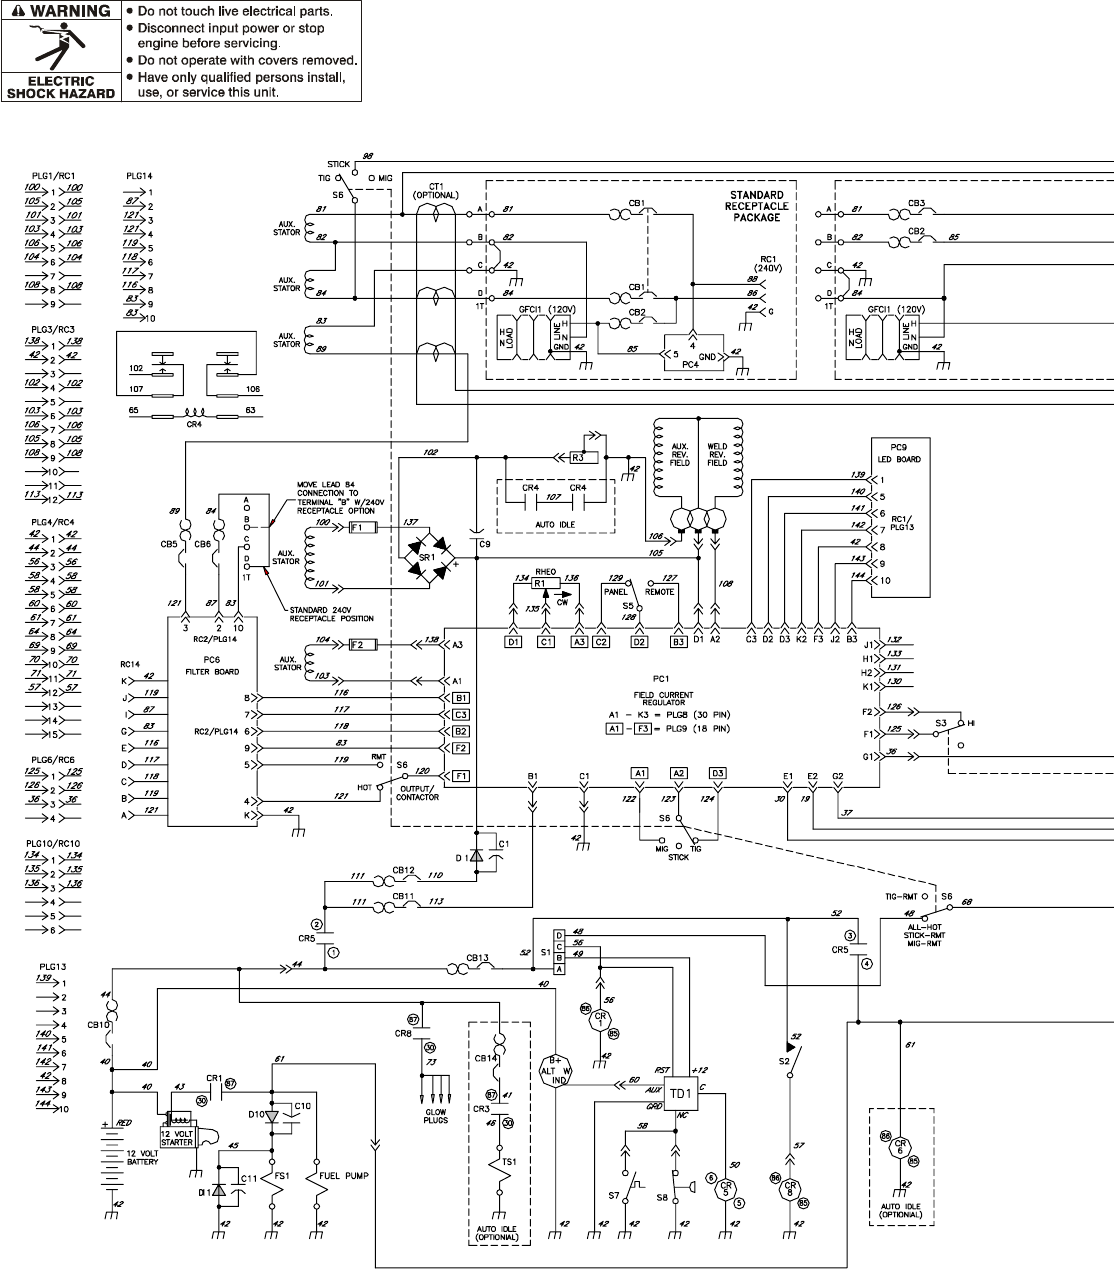 e6fd9246 7dd6 40f2 a721 160be64b0197 bg3e page 62 of miller electric welding system 400p, 500 x user guide Basic Electrical Wiring Diagrams at nearapp.co